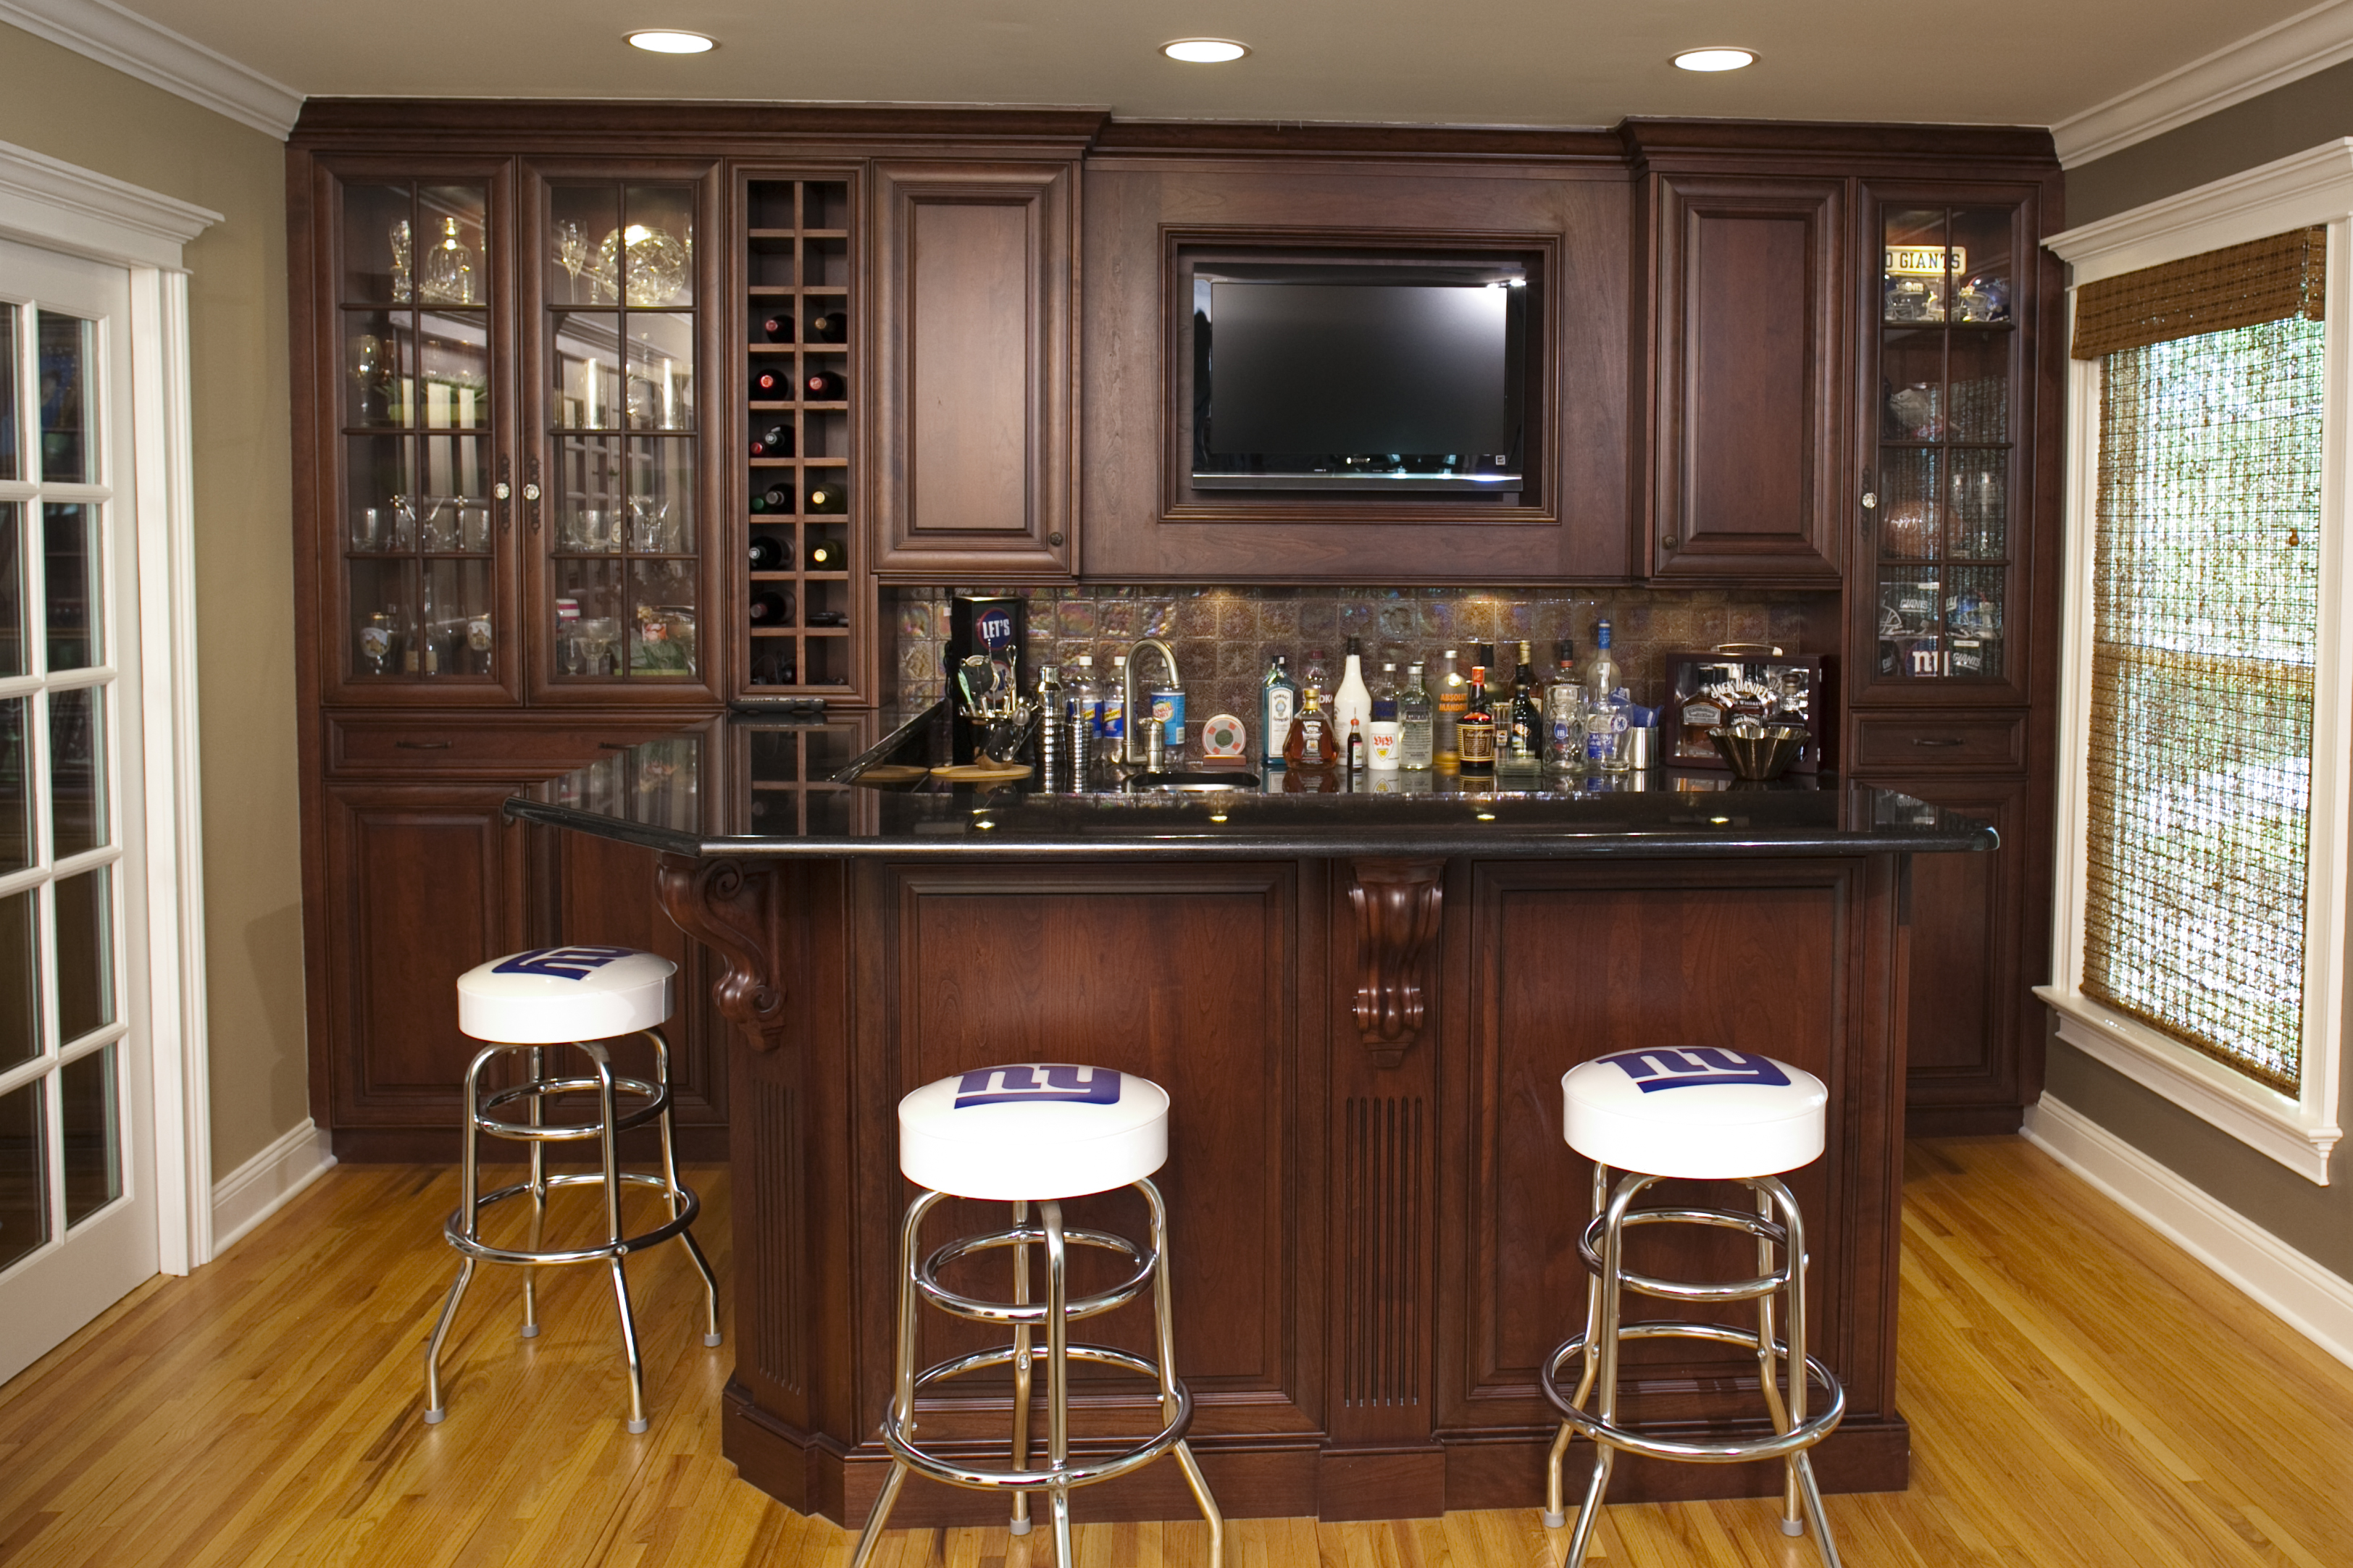 wet bar ideas home bar ideas - Bar Design Ideas For Home